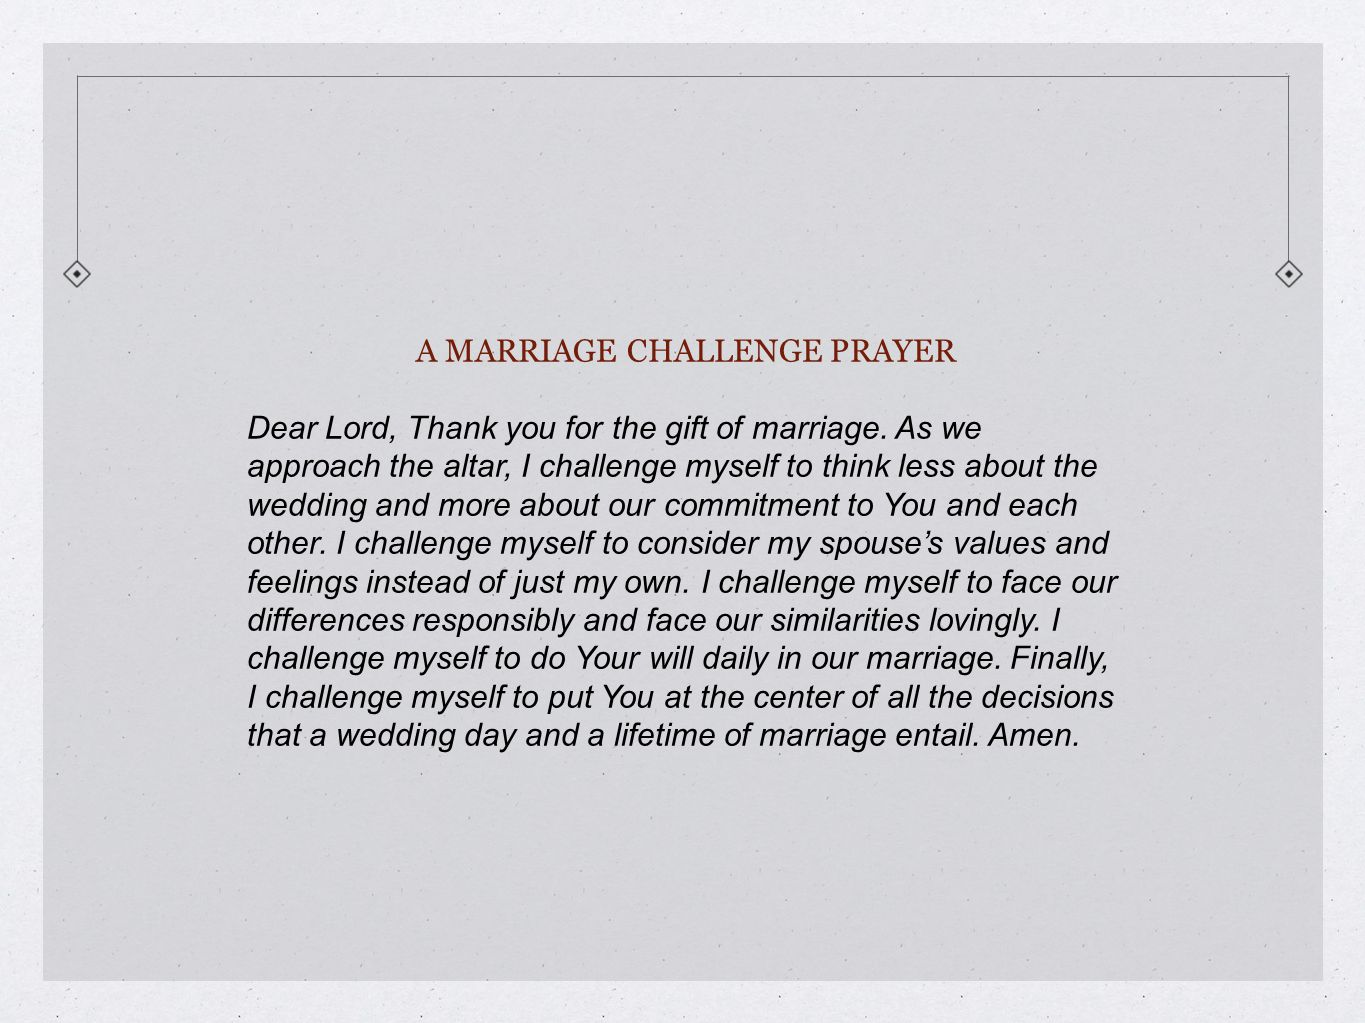 A MARRIAGE CHALLENGE PRAYER Dear Lord, Thank you for the gift of marriage.